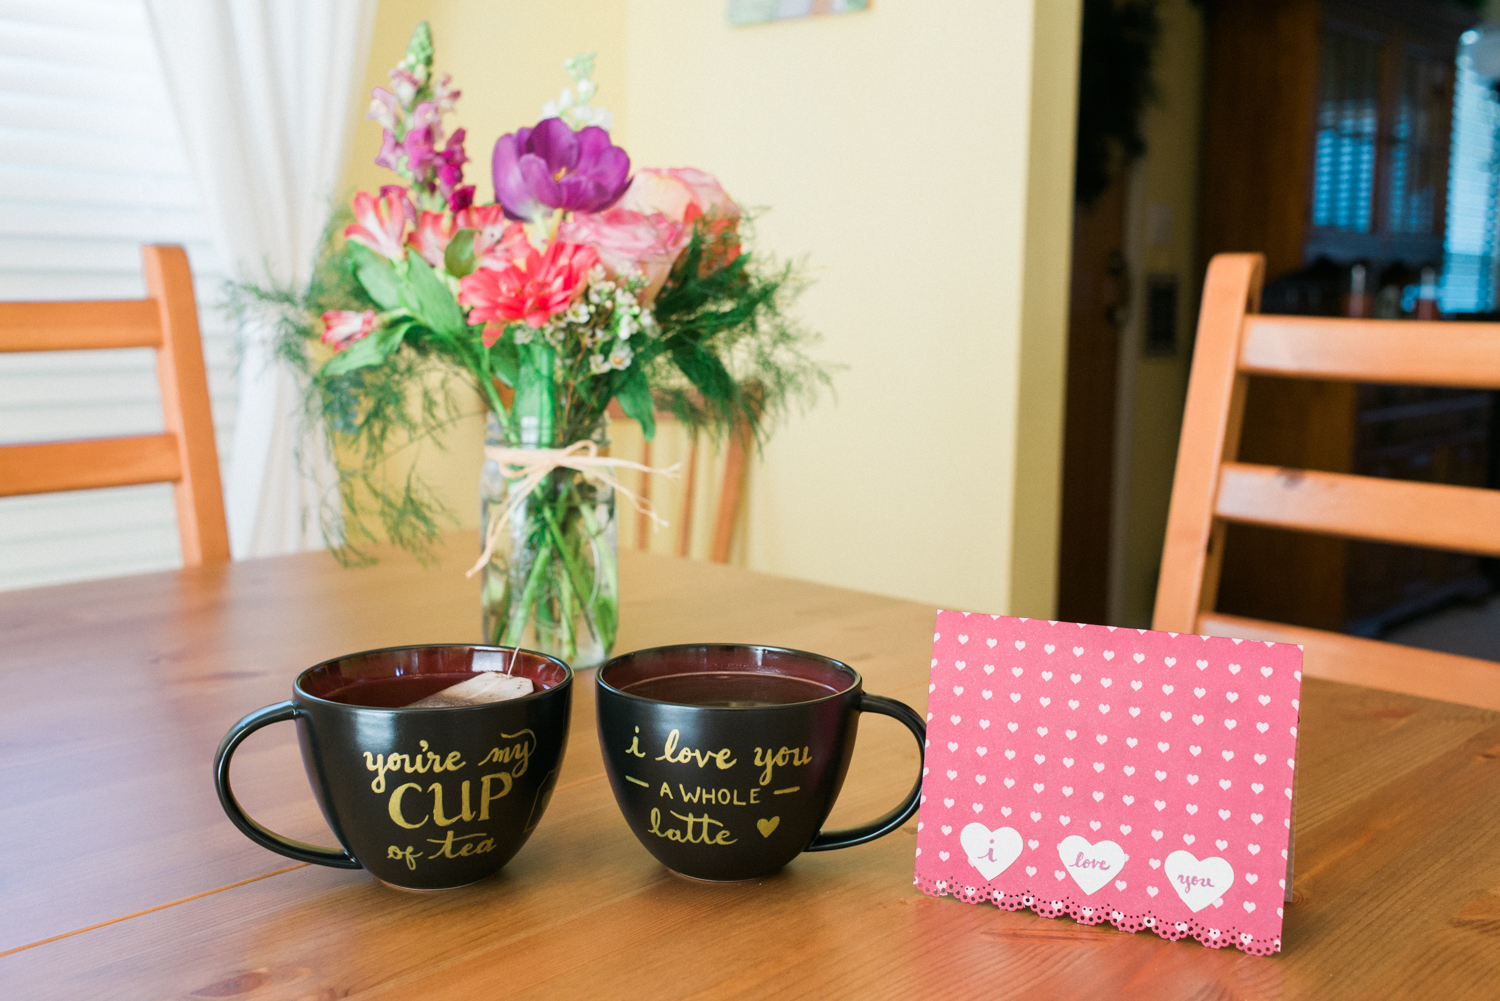 valentines-day-2015-handmade-coffee-tea-mugs-portland-oregon-shelley-marie-photo-2.jpg